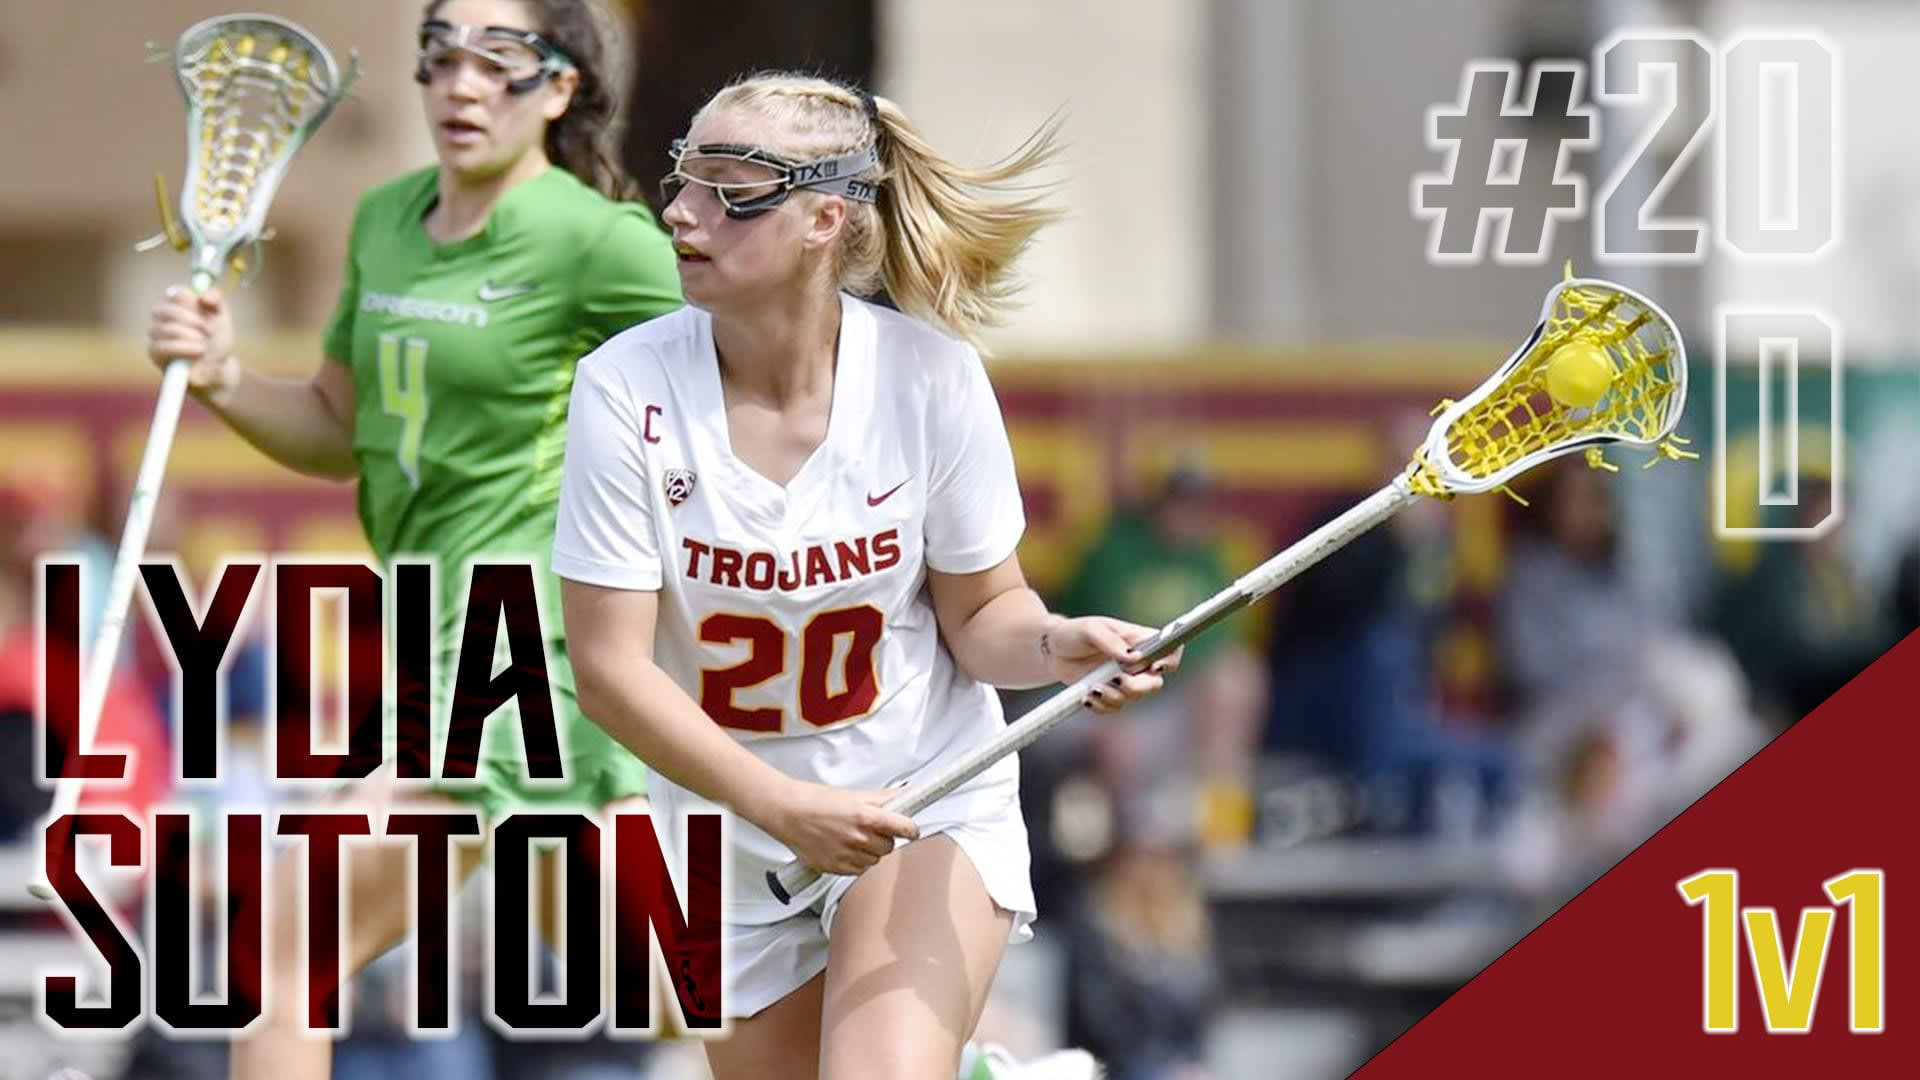 Lydia Sutton - USC and WPLL Interview